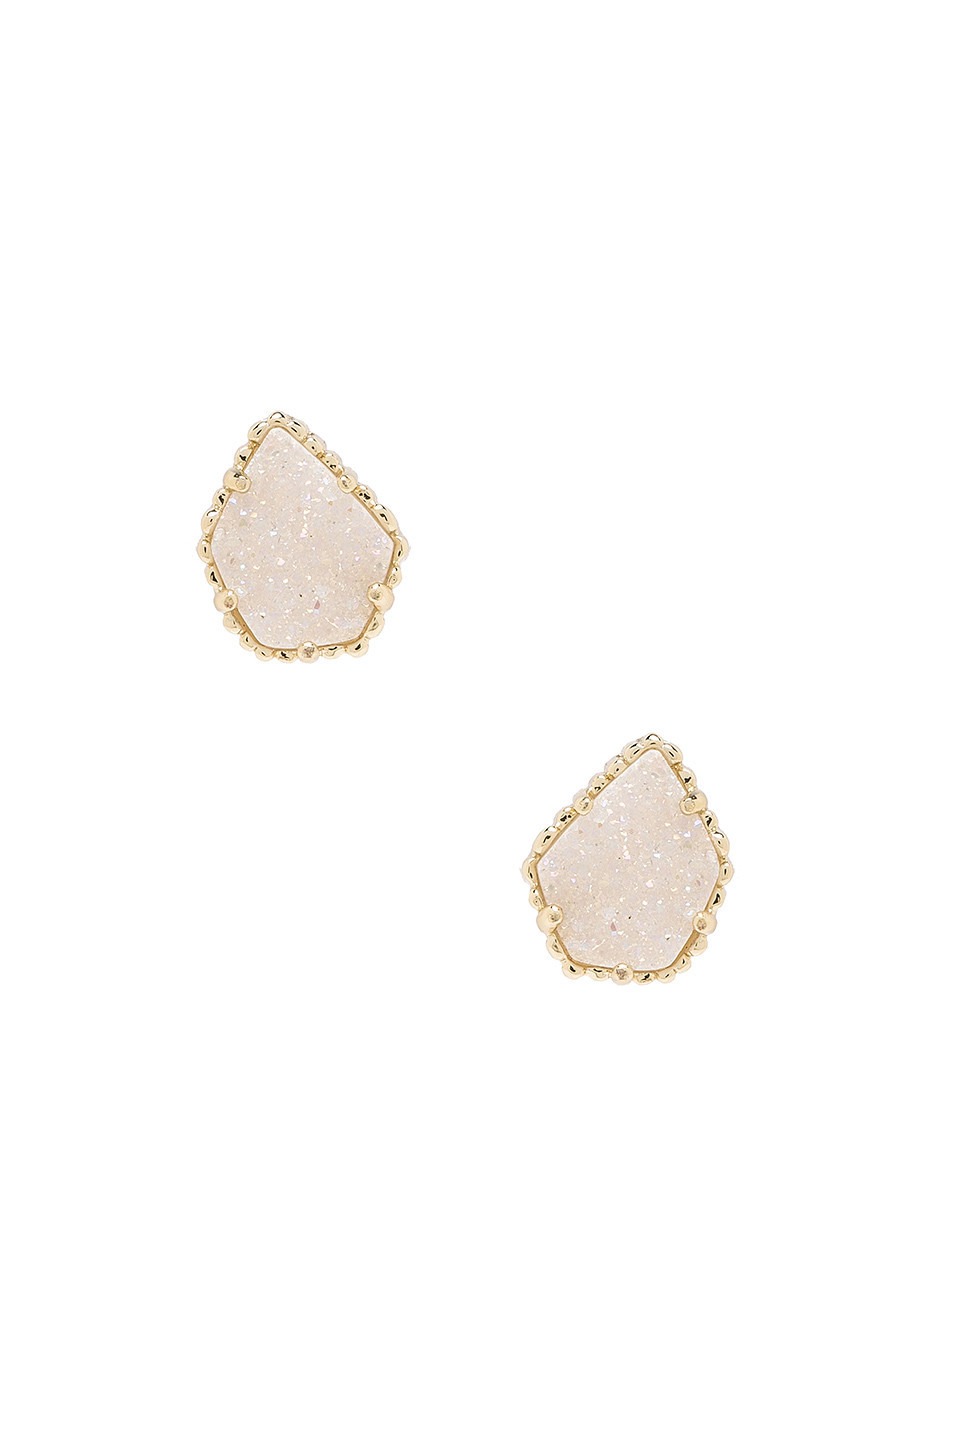 Kendra Scott Tessa Earring in gold / metallic